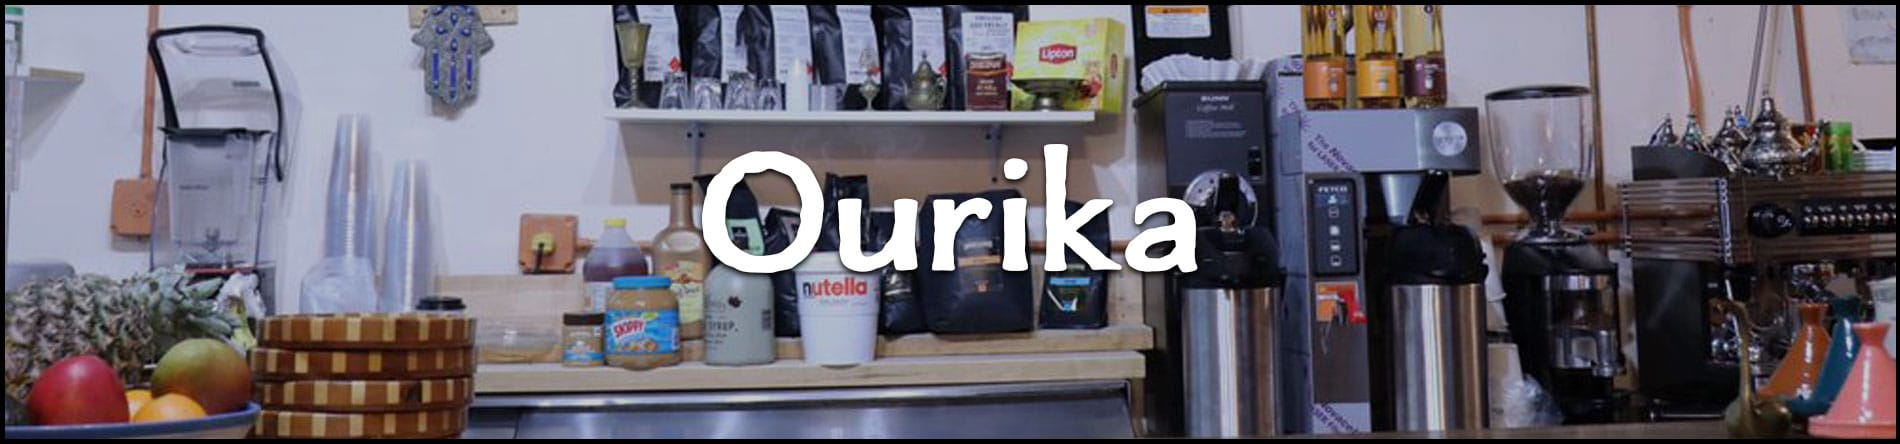 Ourika is a Cafe in New York, NY